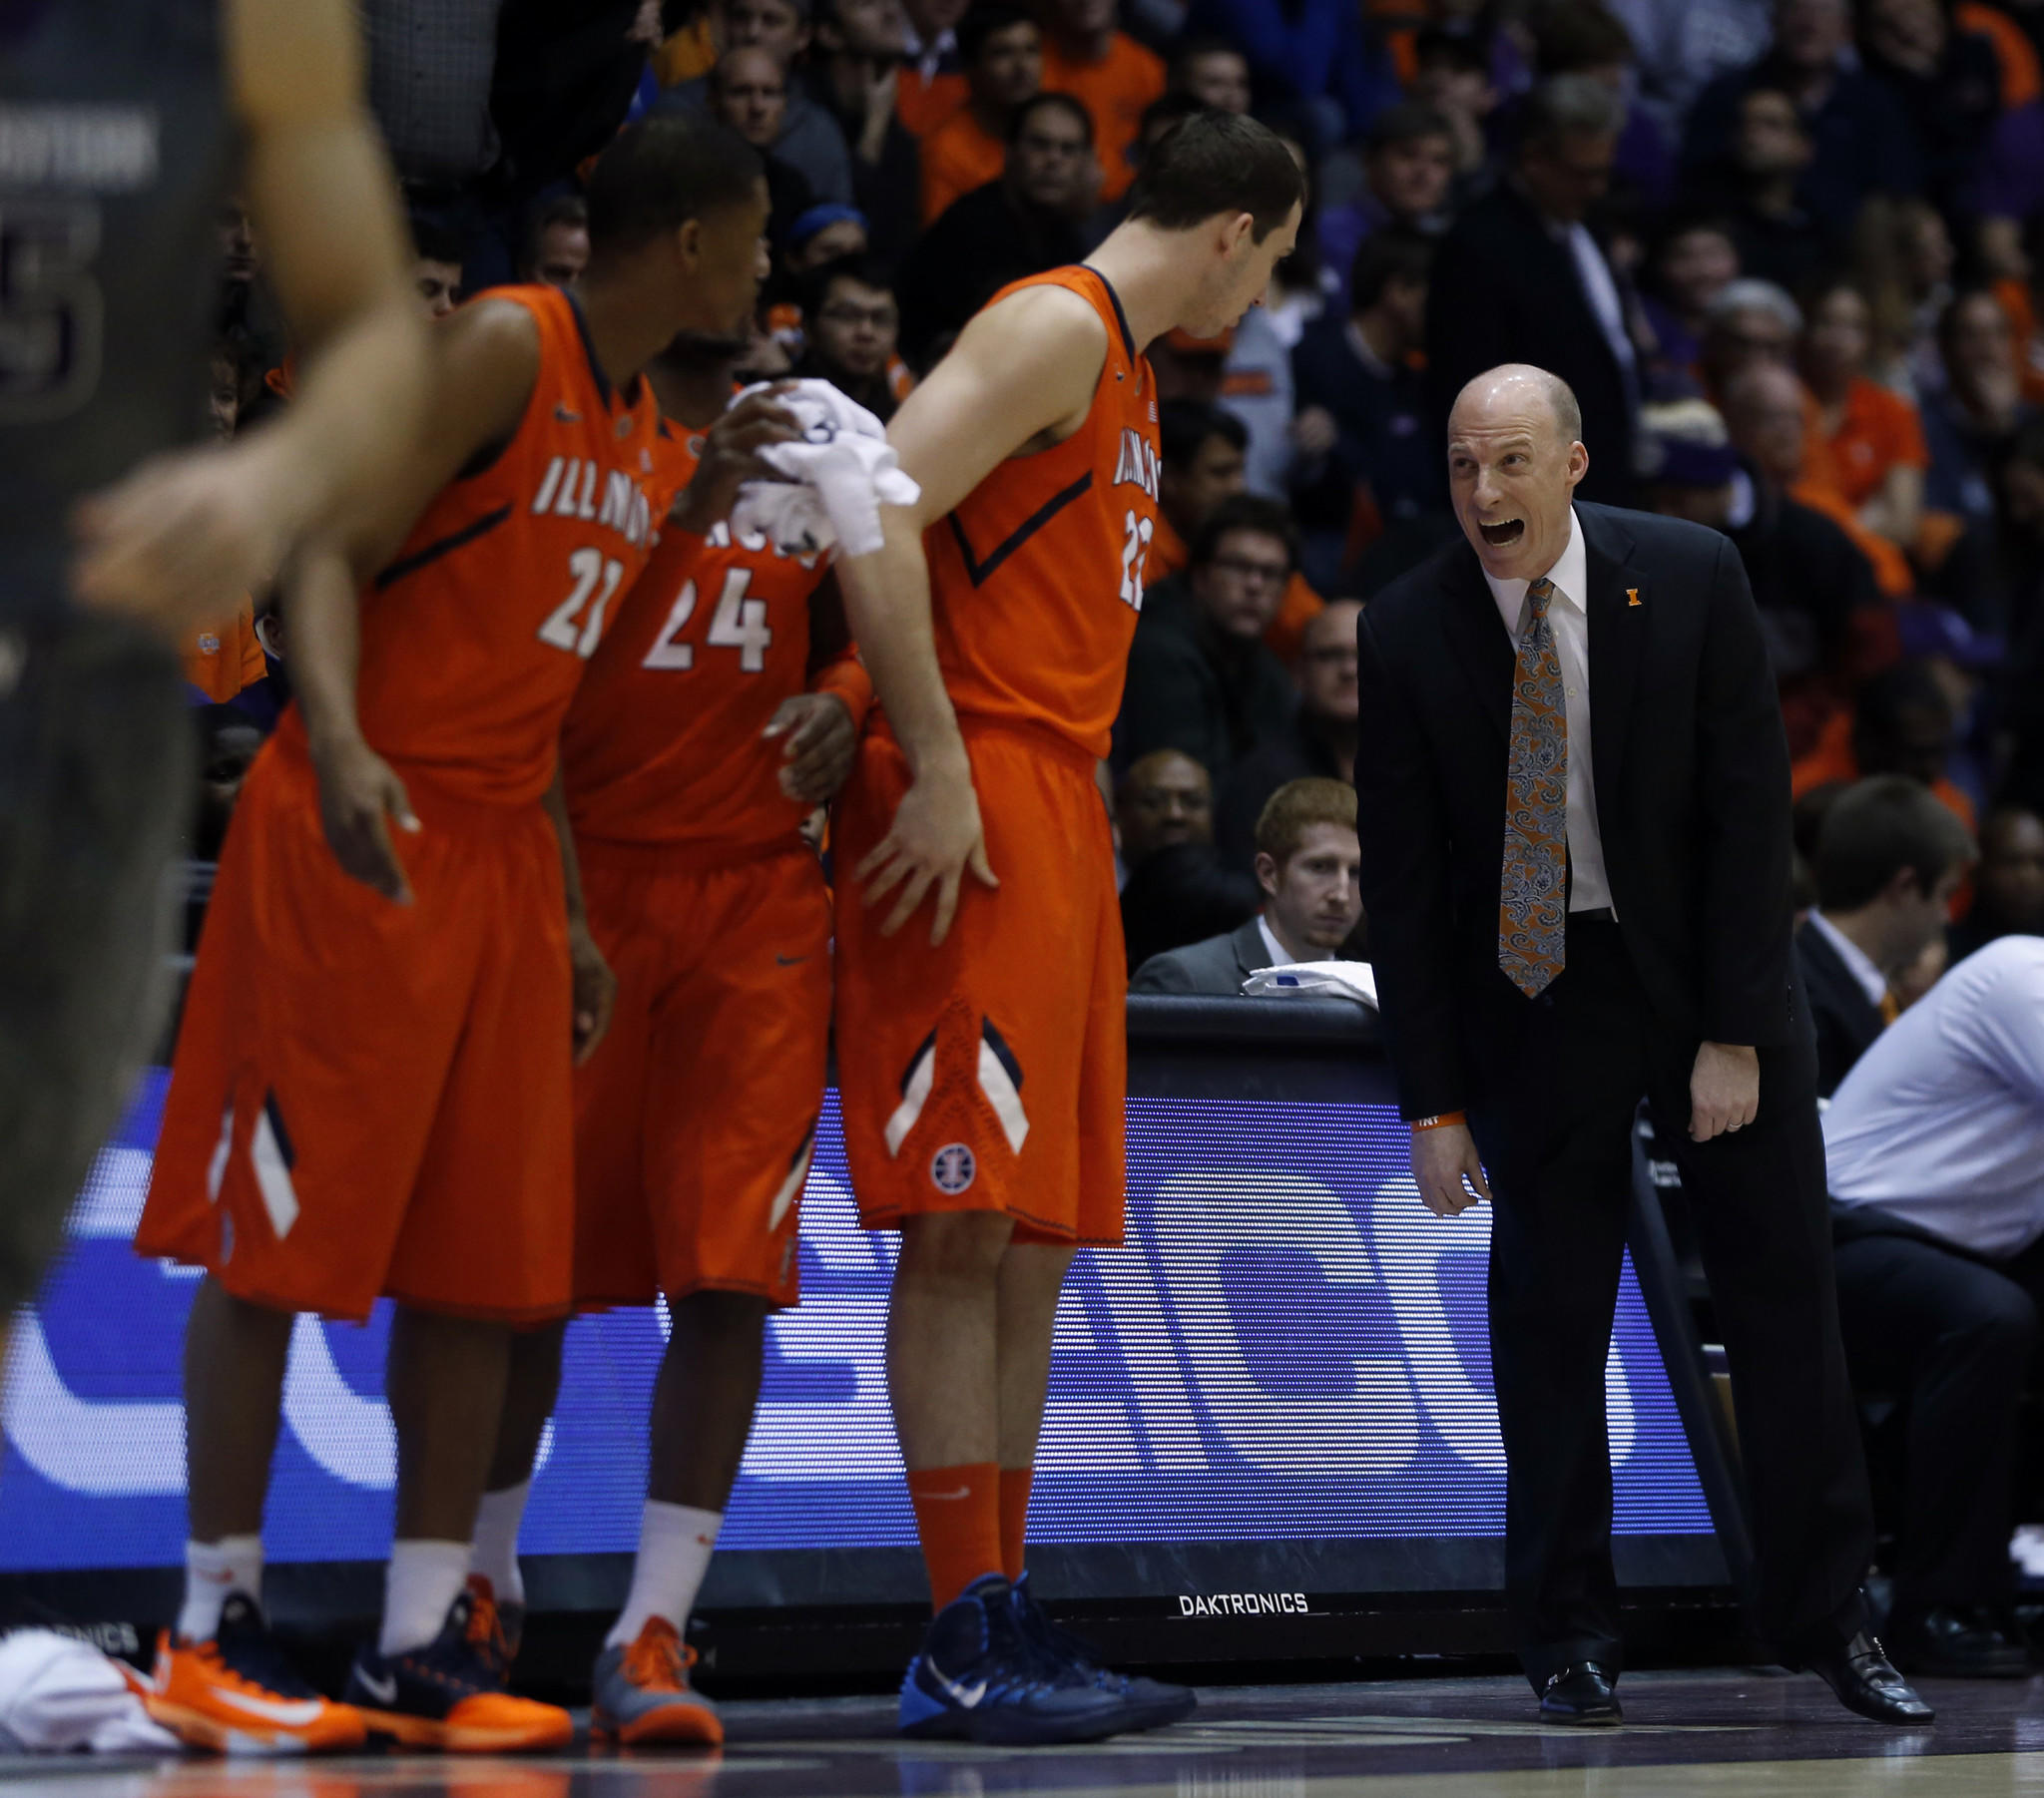 Illinois head coach John Groce during 1st half against Northwestern during Big Ten basketball game in Evanston.